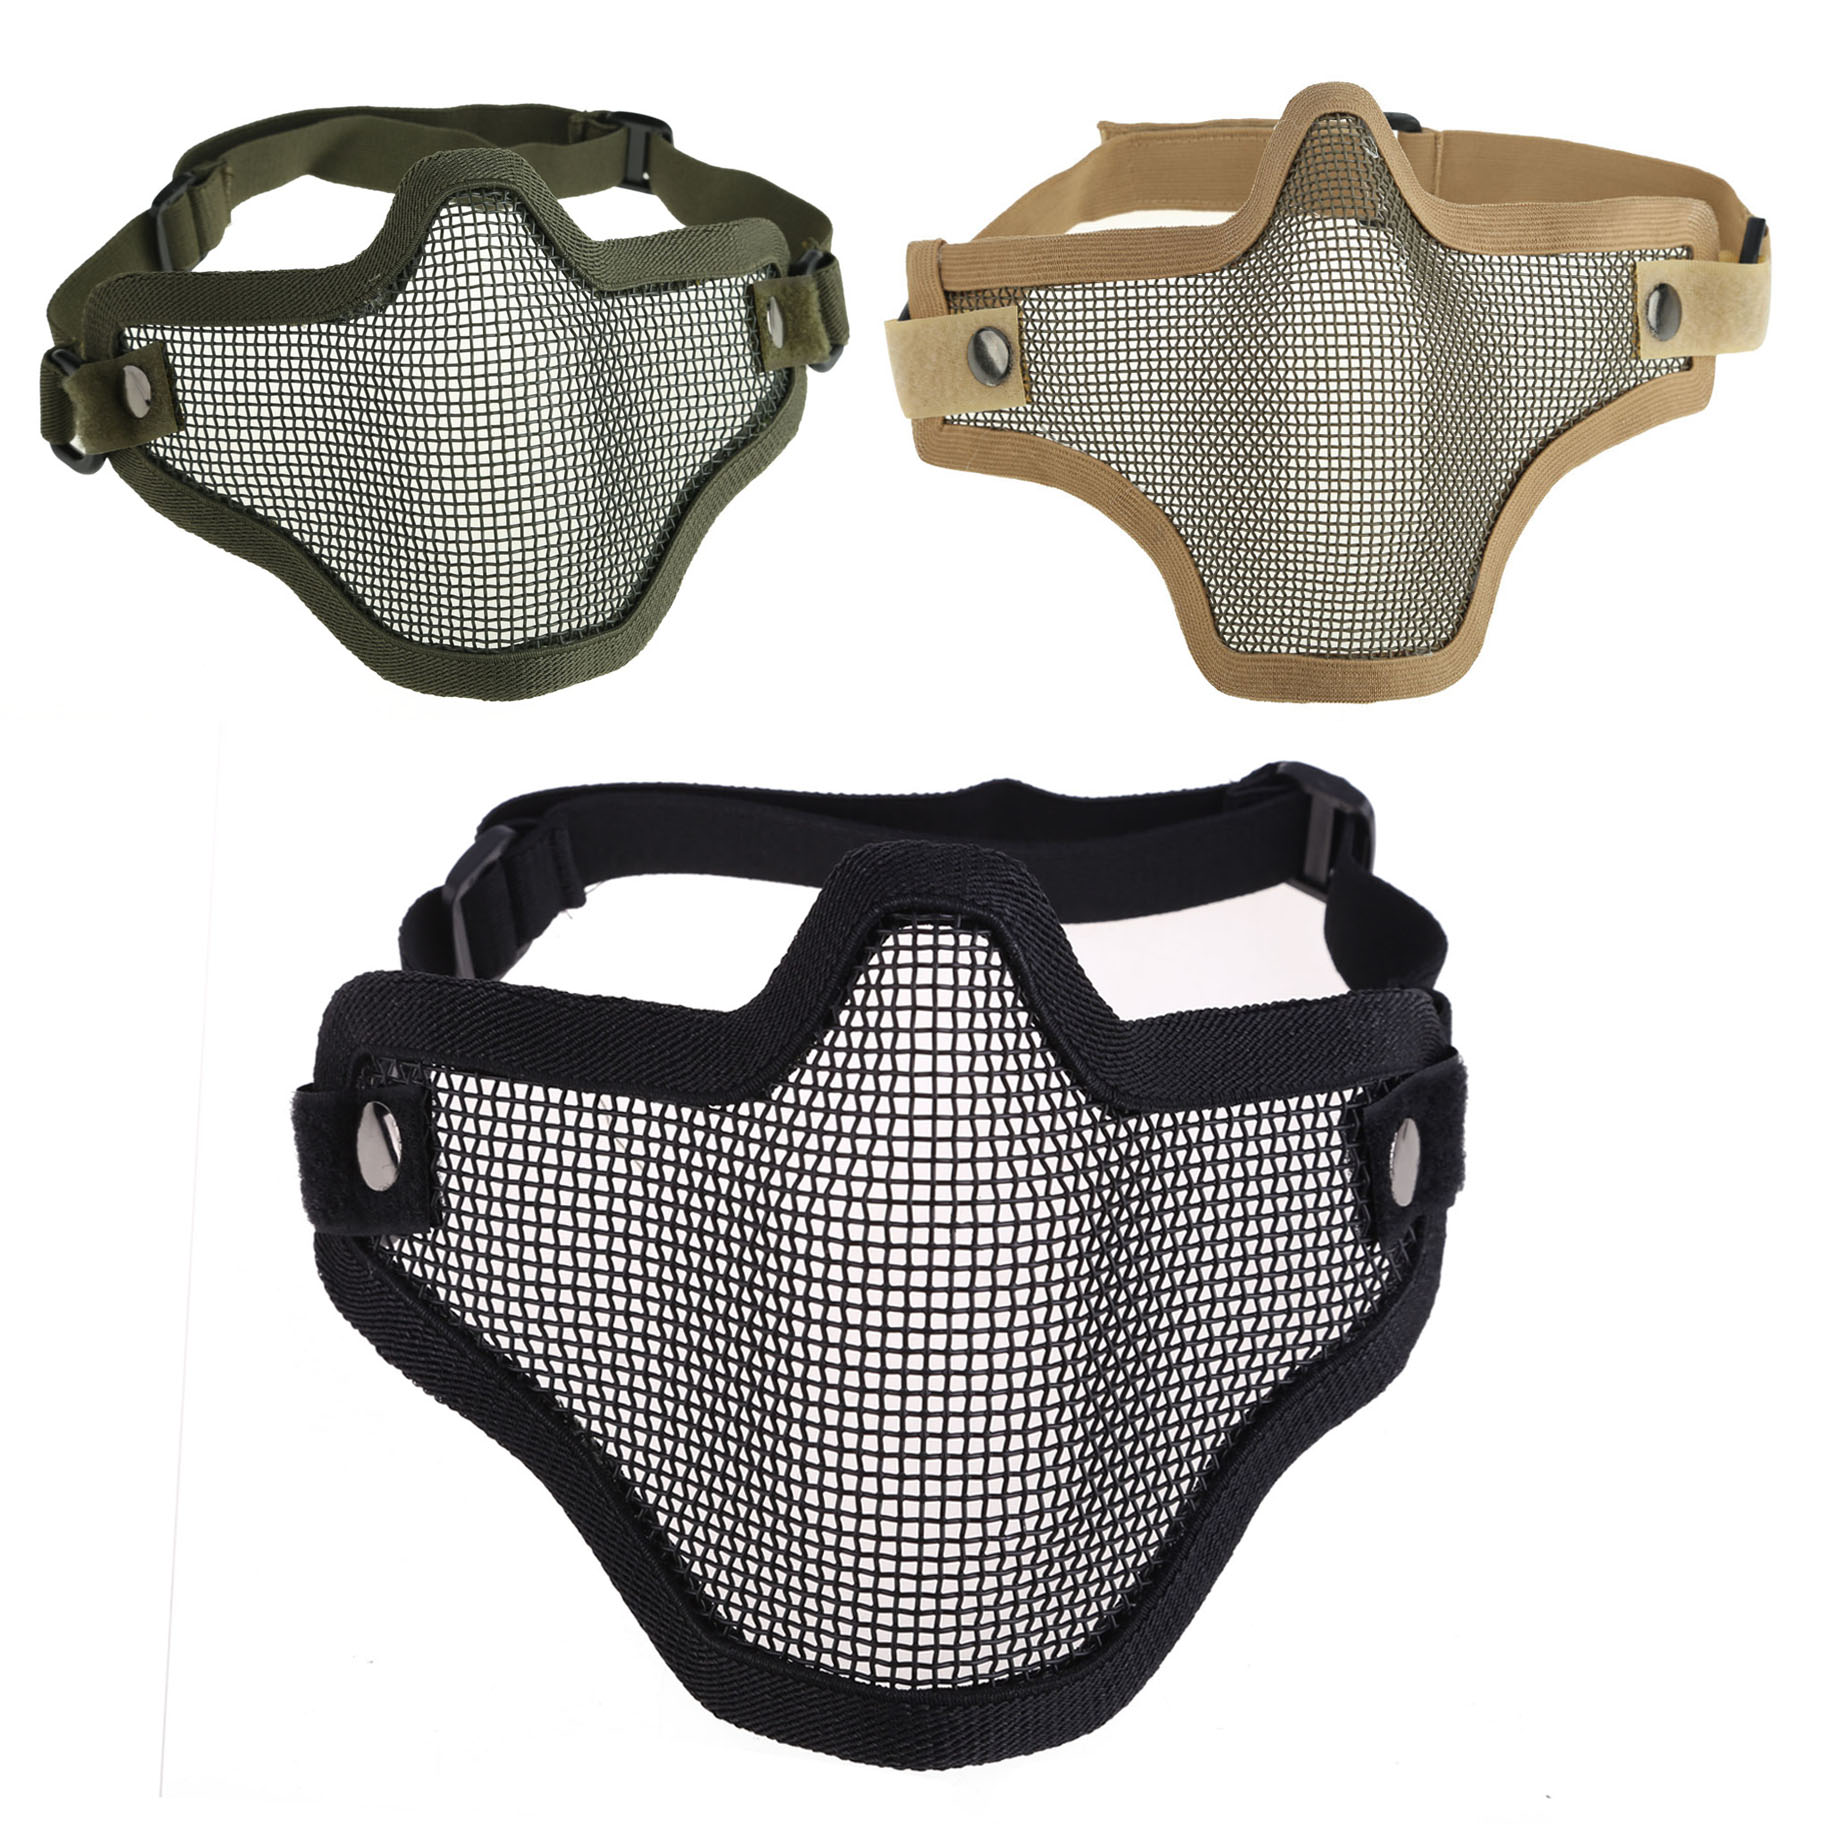 New Outdoor Pro Shooting Paintballs Protective Tactical Hunting Metal Half Face Mask Mesh Airsoft Paintball Protective Mask SS